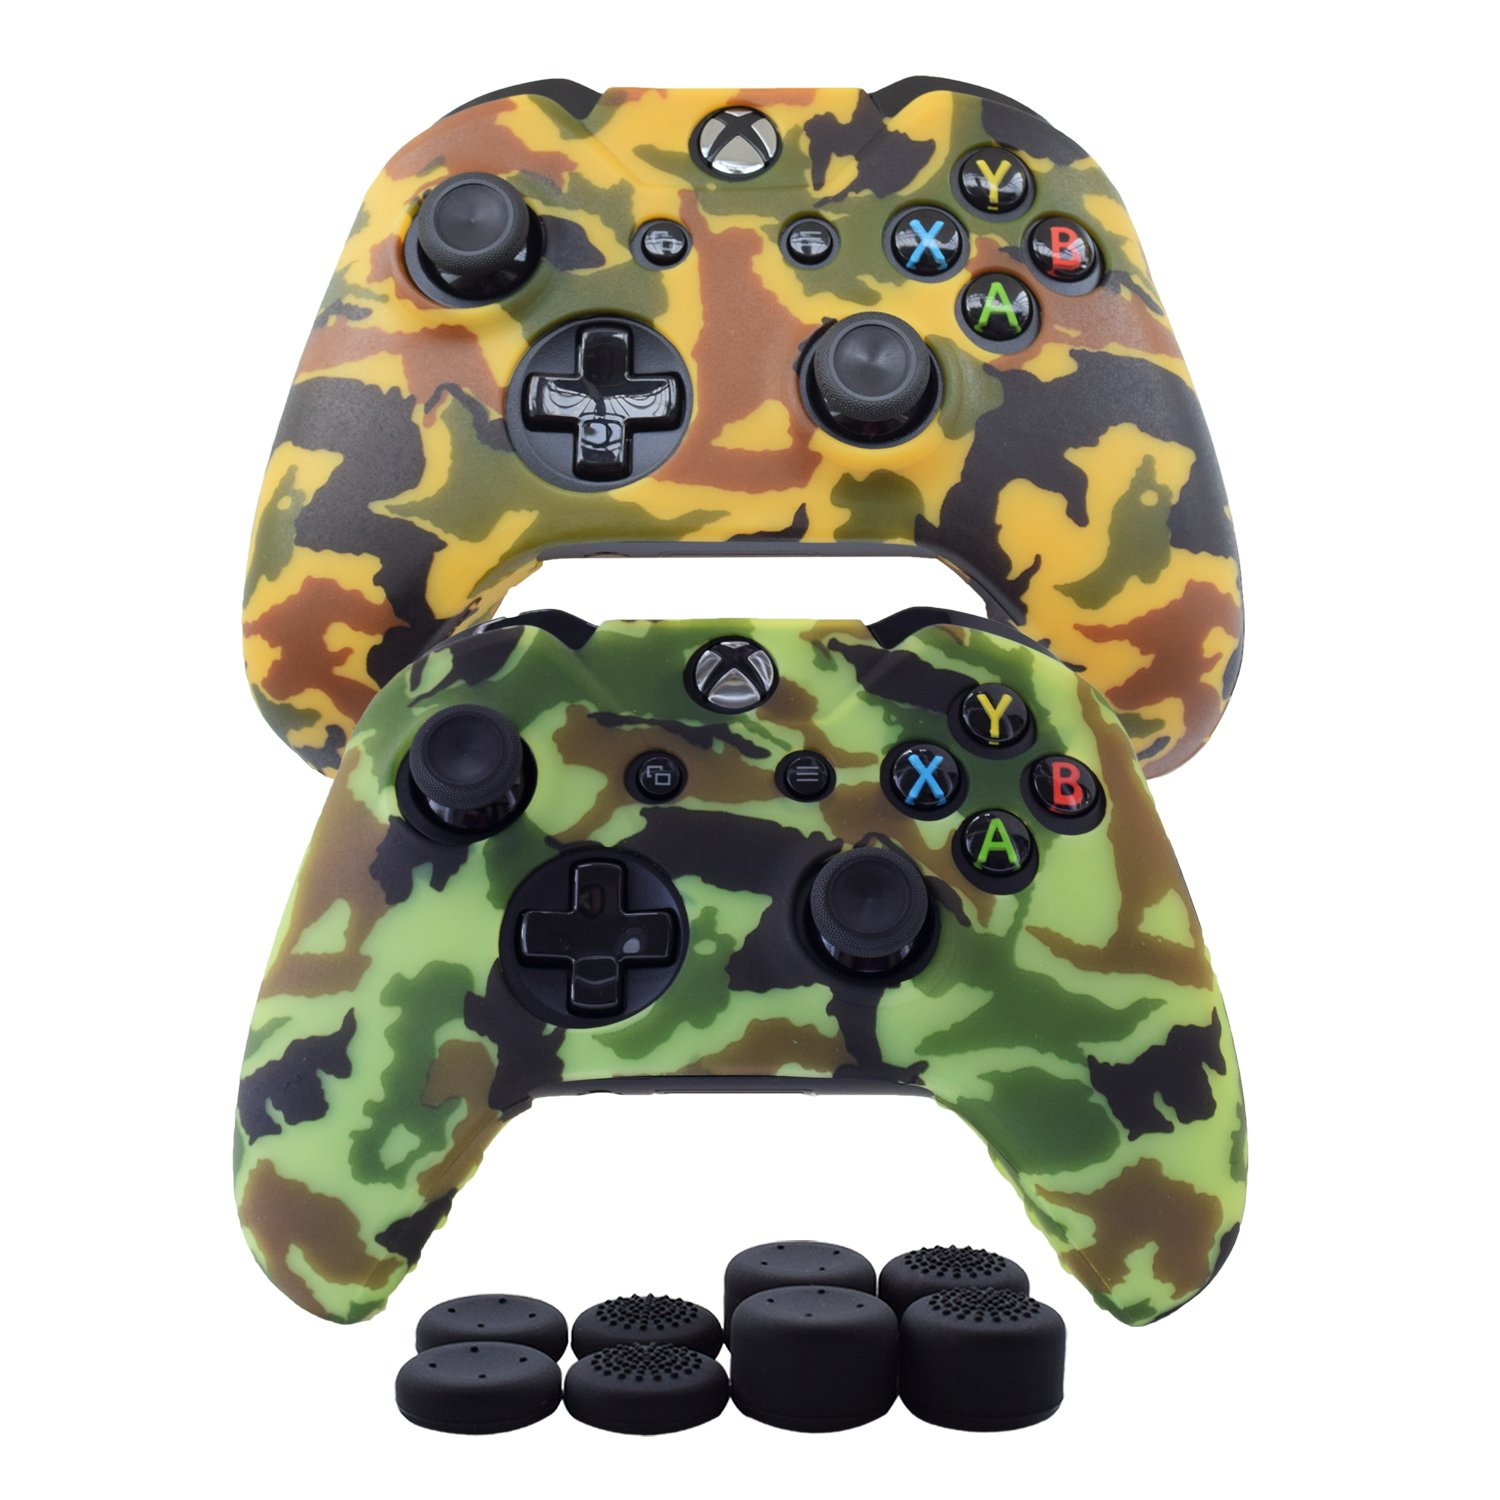 Hikfly Silicone Gel Controller Cover Skin Protector Kits for Xbox One Controller Video Games(2x Controller Camouflage cover with 8 x Thumb Grip Caps)(Yellow,Light Green)